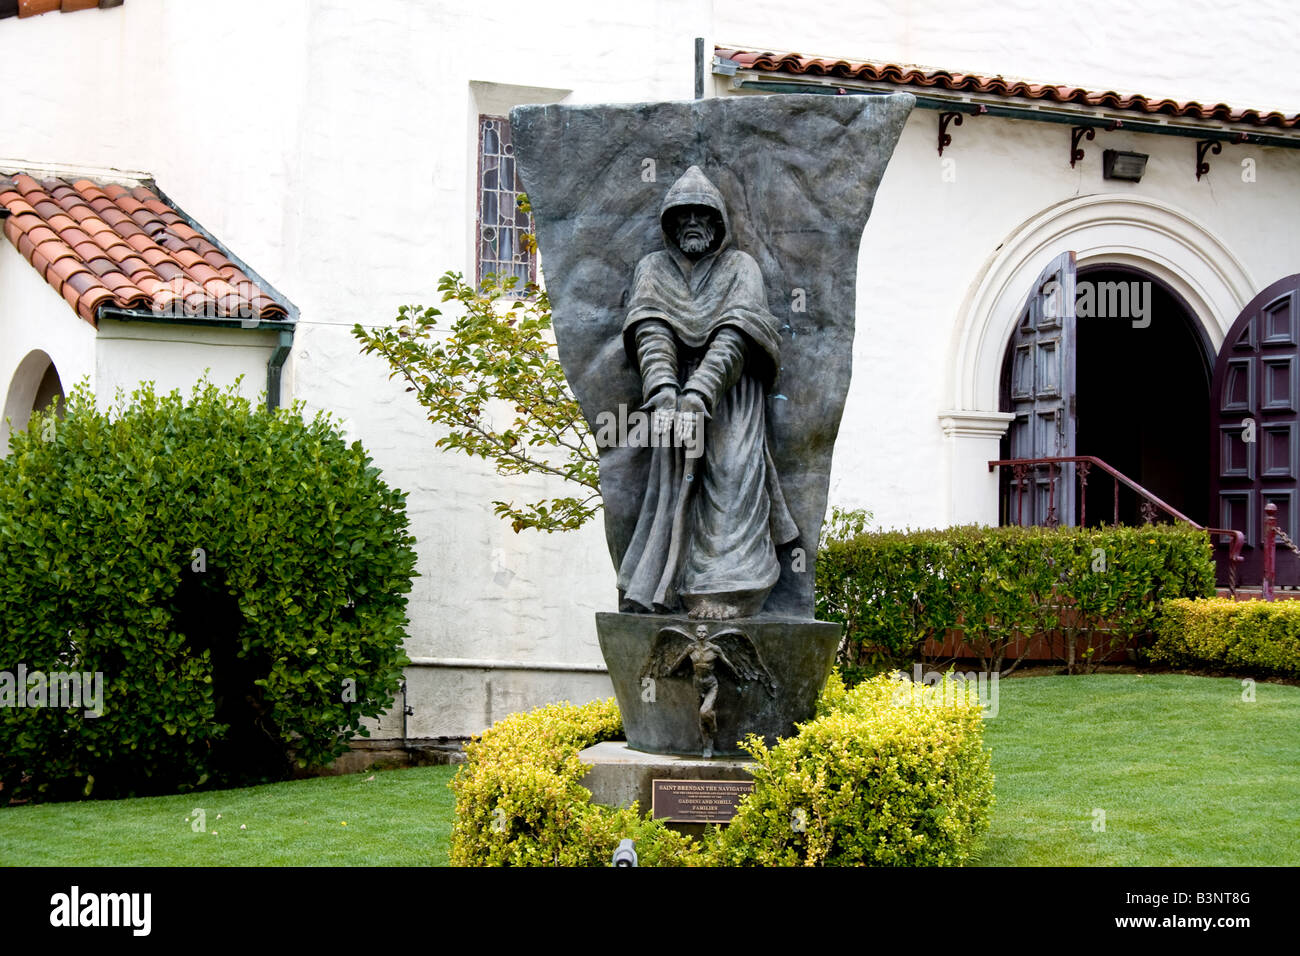 Statue of Saint Brendan the Navigator in front of a church - Stock Image